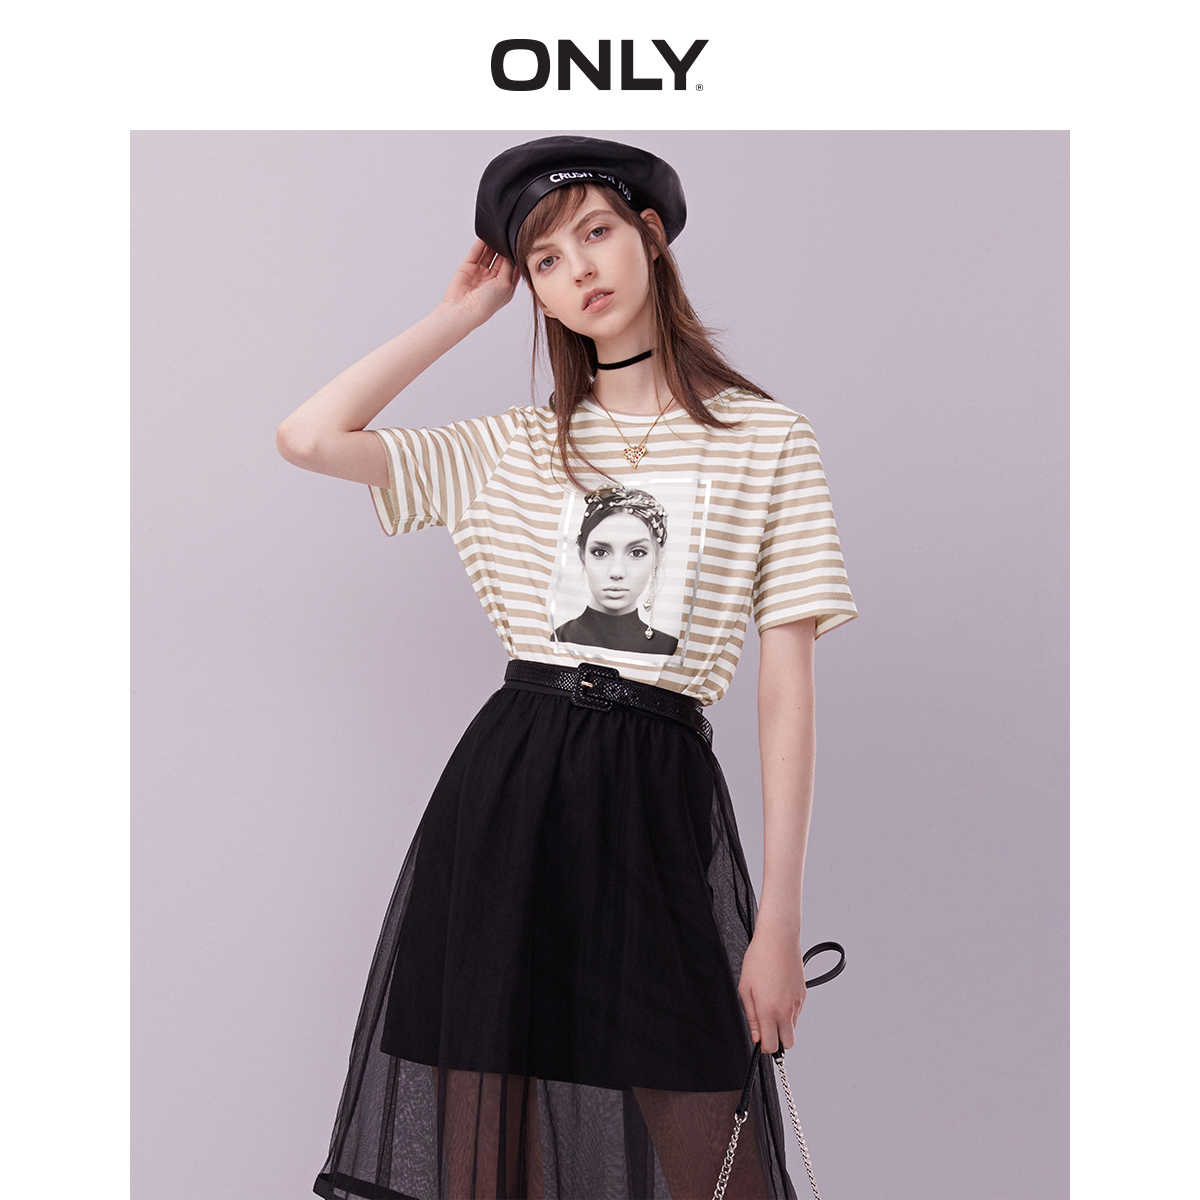 ONLY  Spring Summer New Women's 100% Cotton Loose Fit Short-sleeved Printed T-shirt |119101594